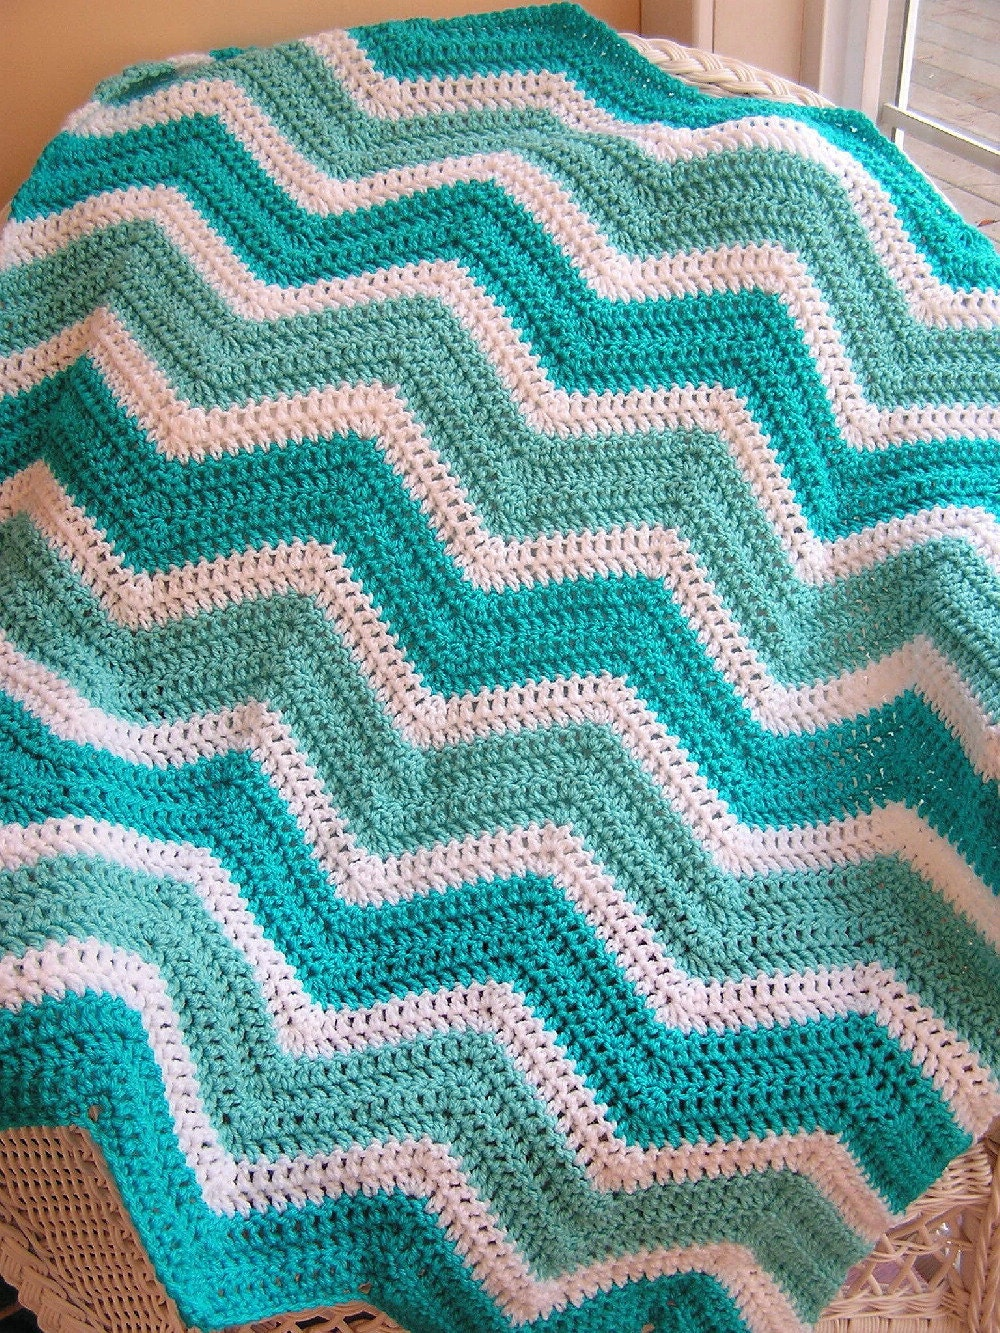 New chevron zig zag baby blanket afghan crochet knit wrap lap zoom bankloansurffo Image collections